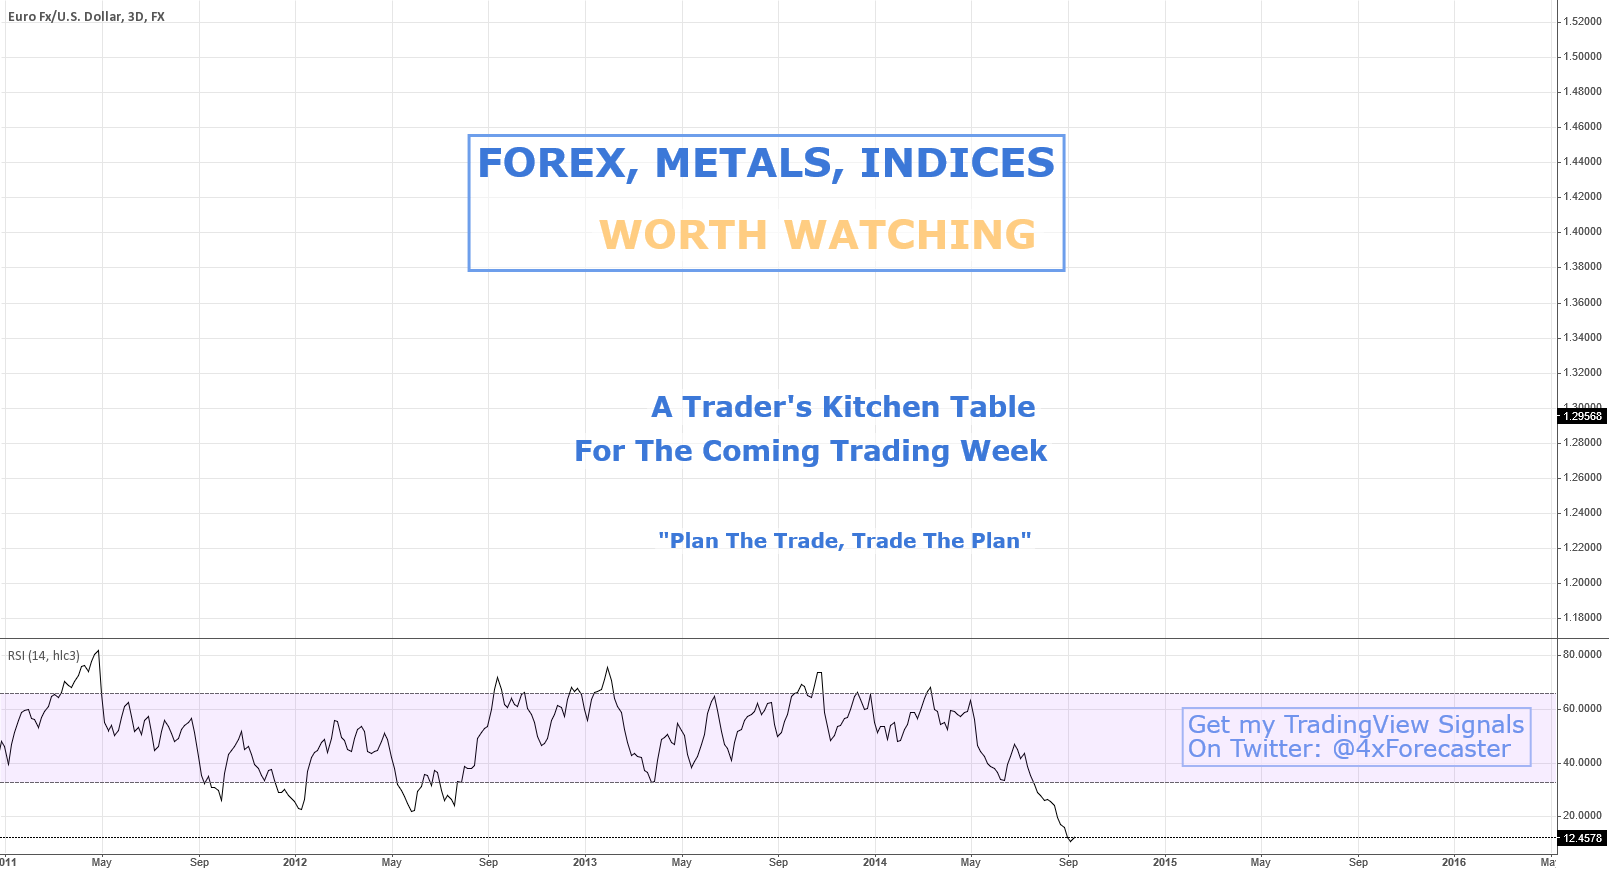 FOREX, METALS, INDICES - What's Worth Watching This Week?